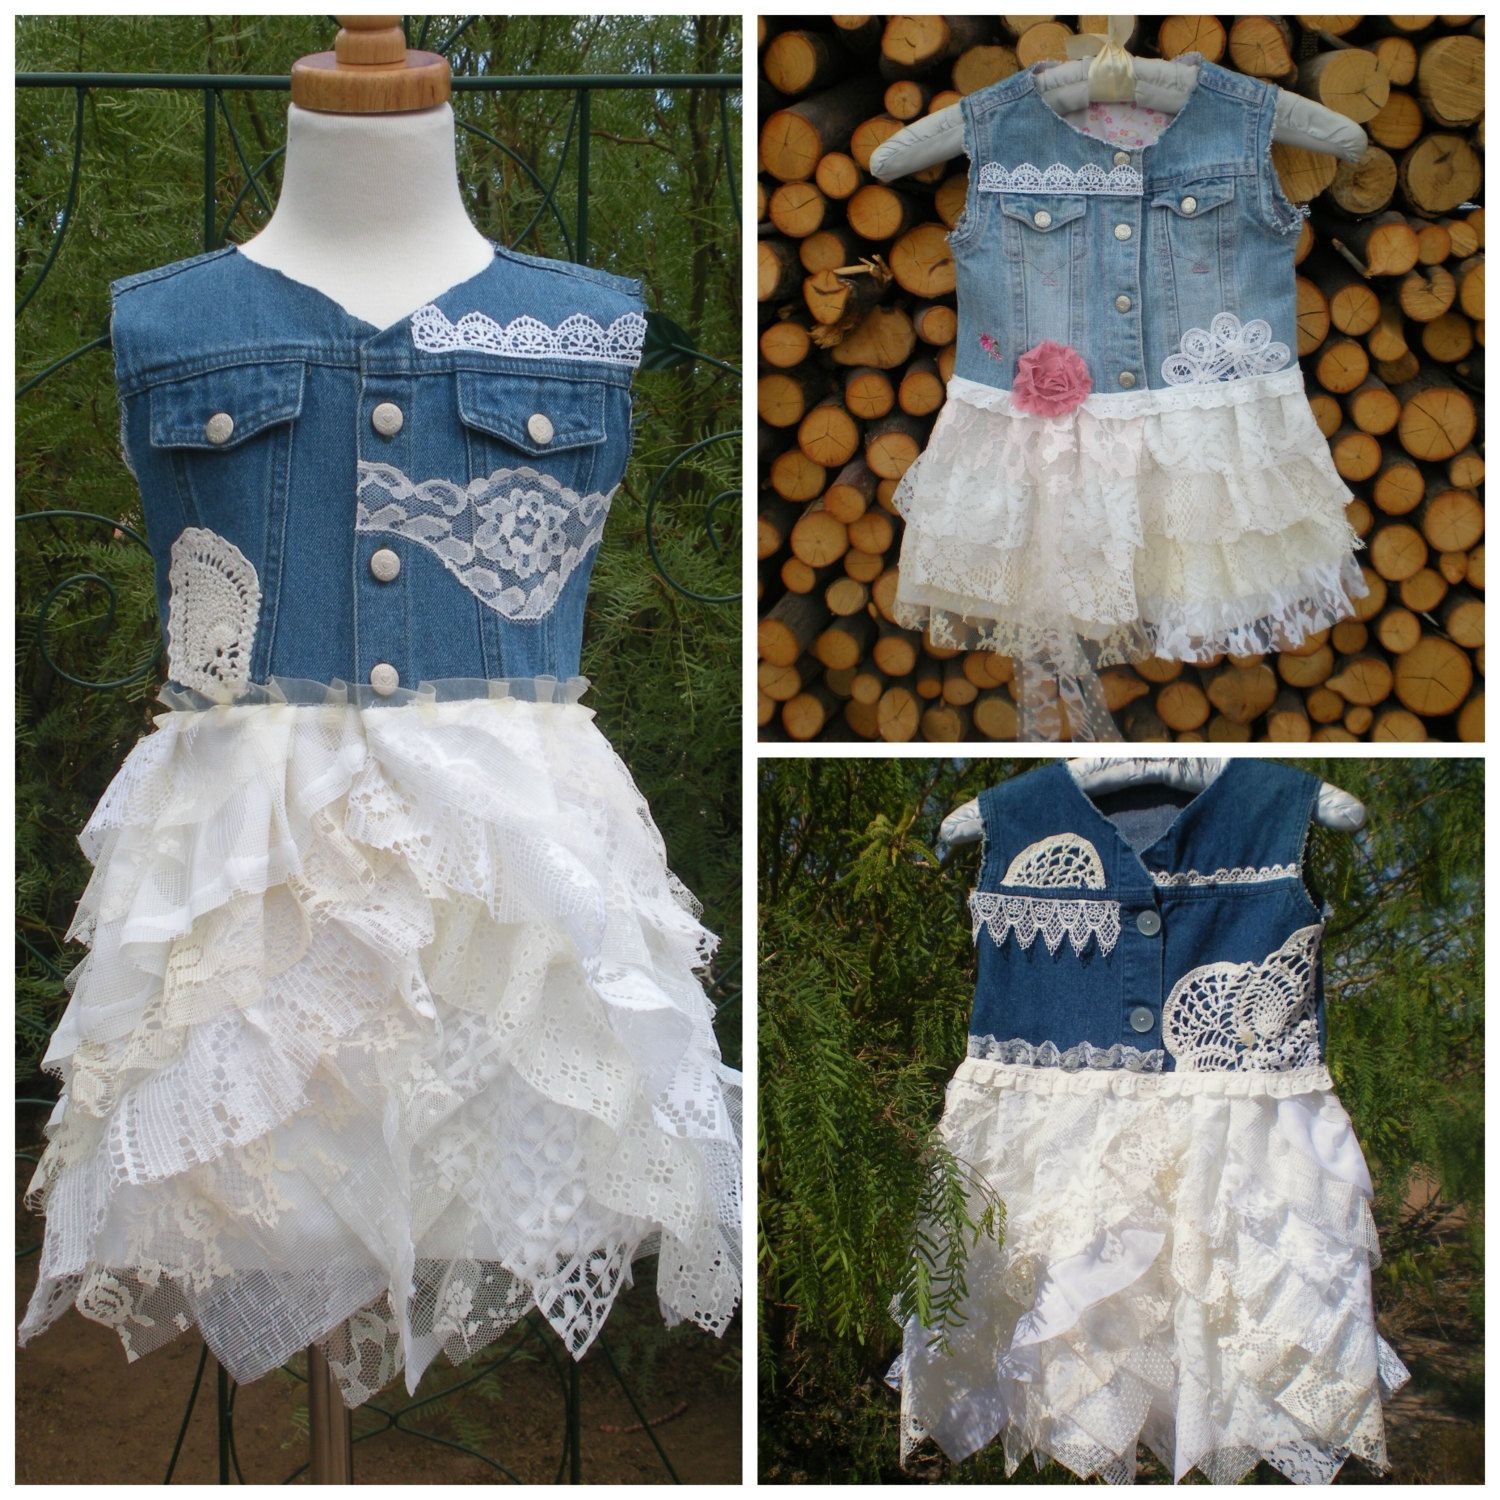 Flower girlus ruffled lace and denim dress country chic by